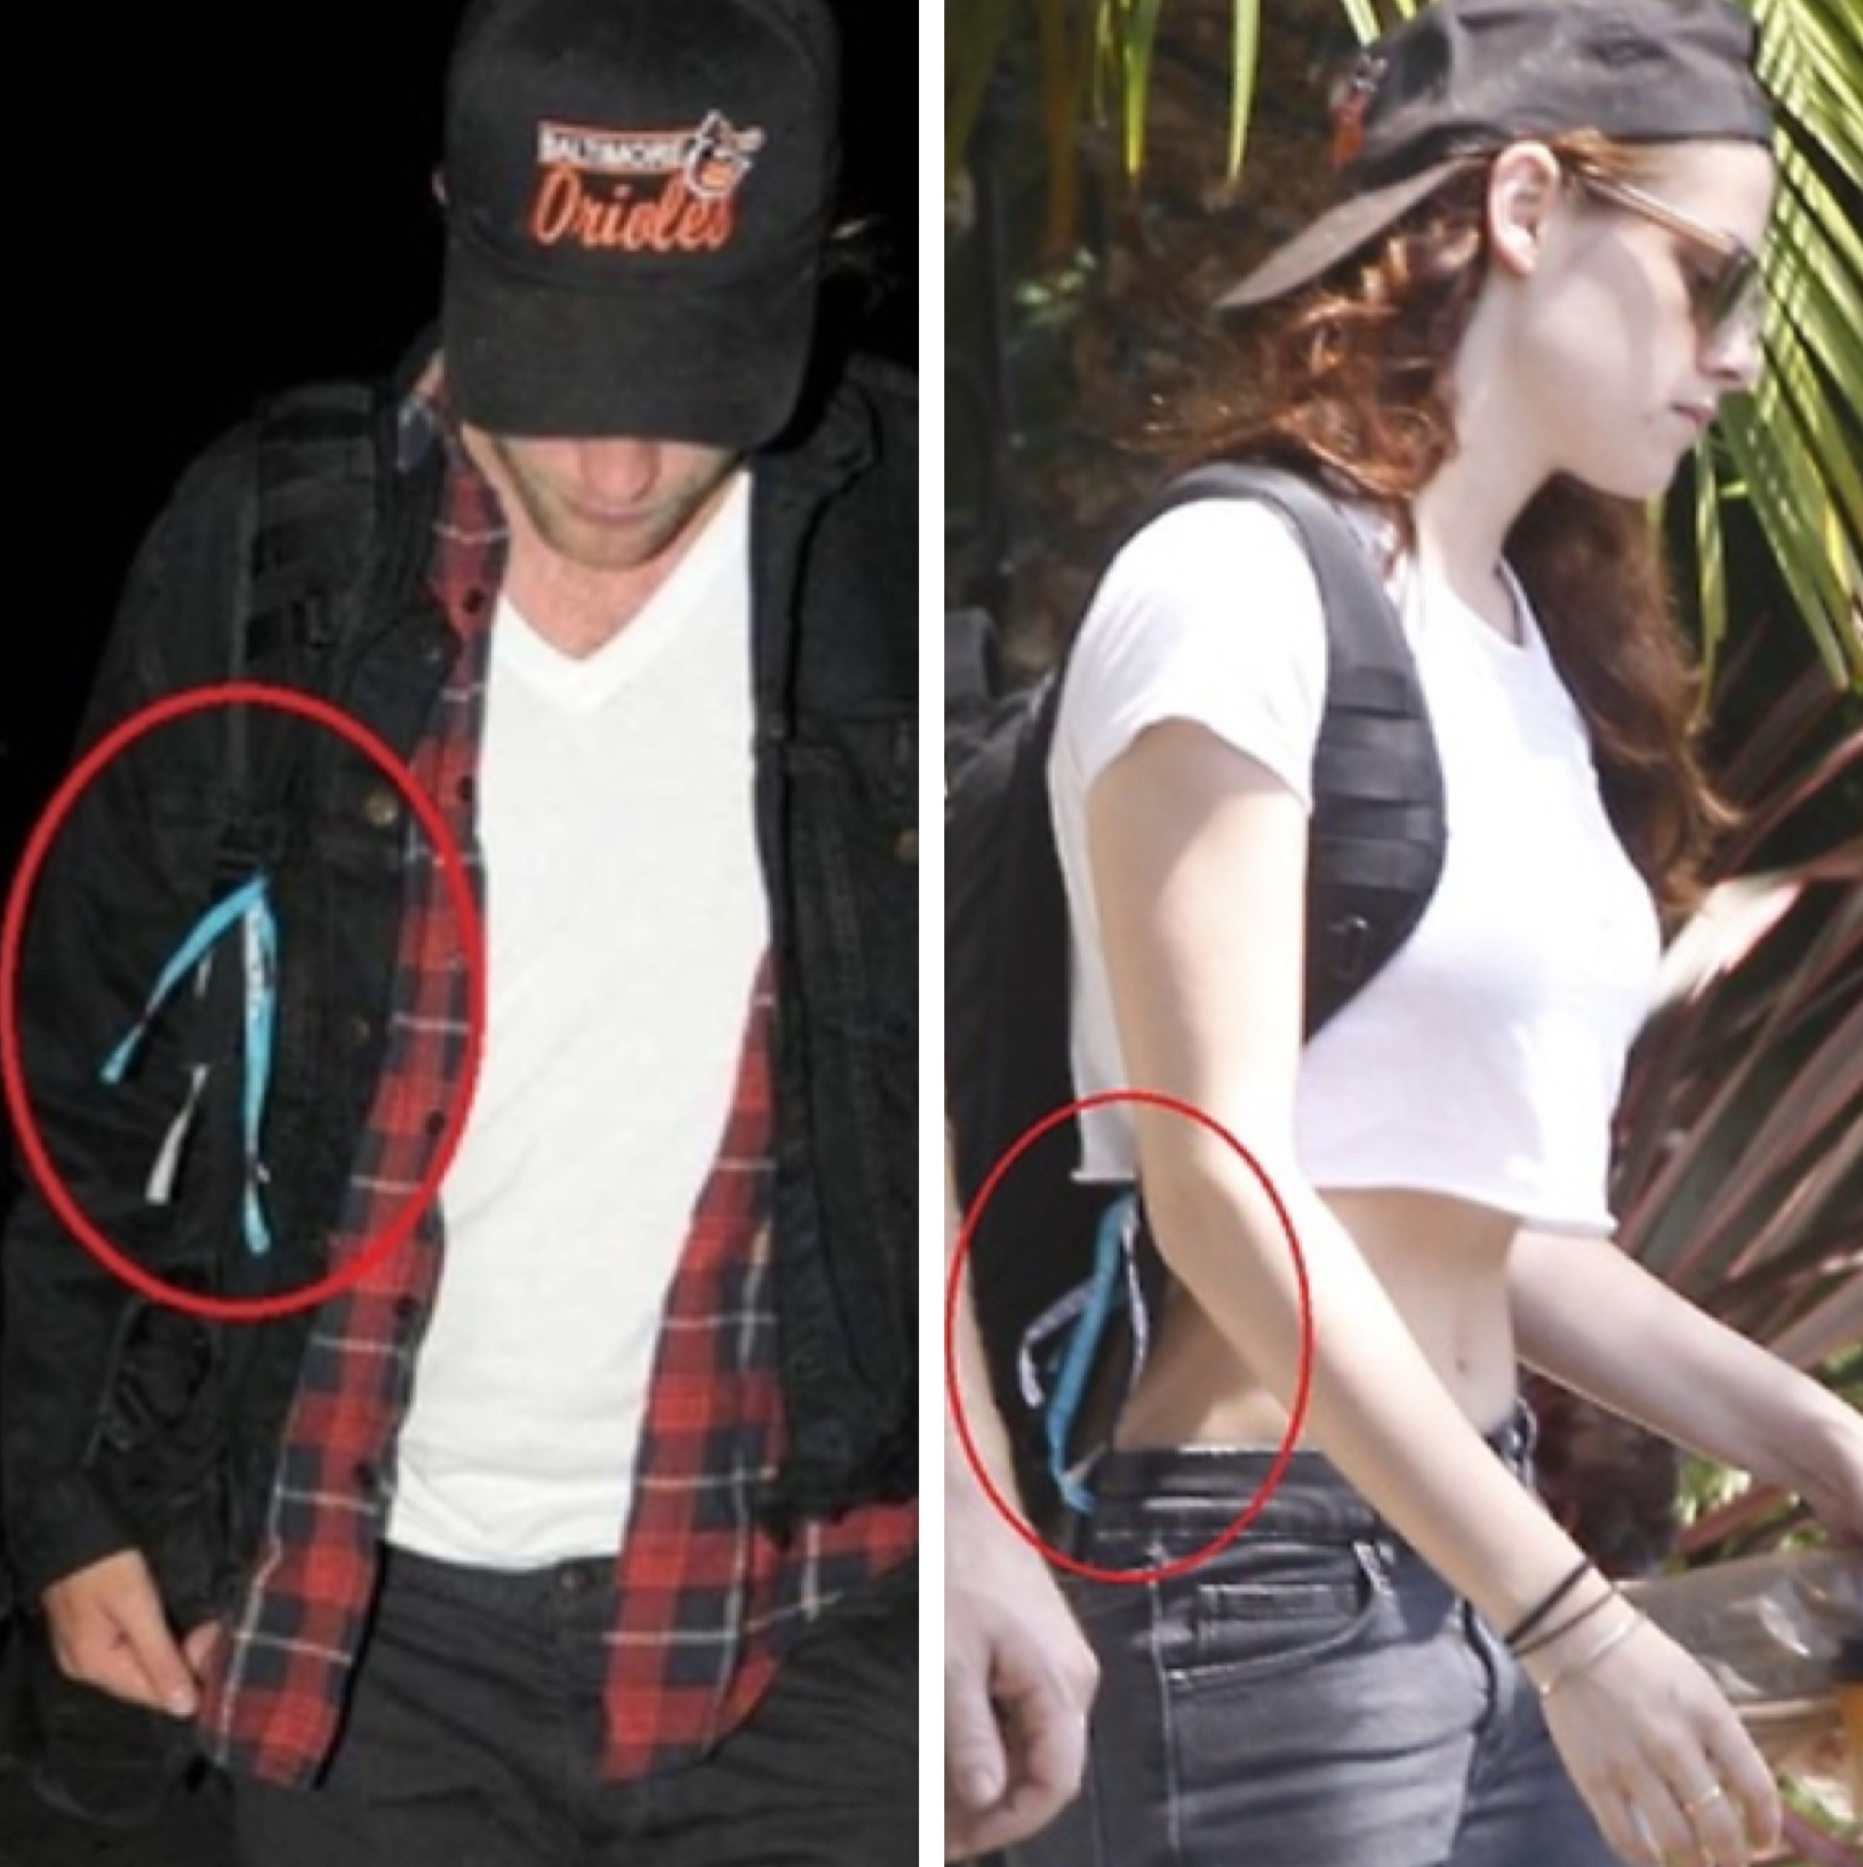 RT @AmazingRobsten: LOOK. AT. THIS. THAT IS ALL. http://t.co/xpt6WlLI